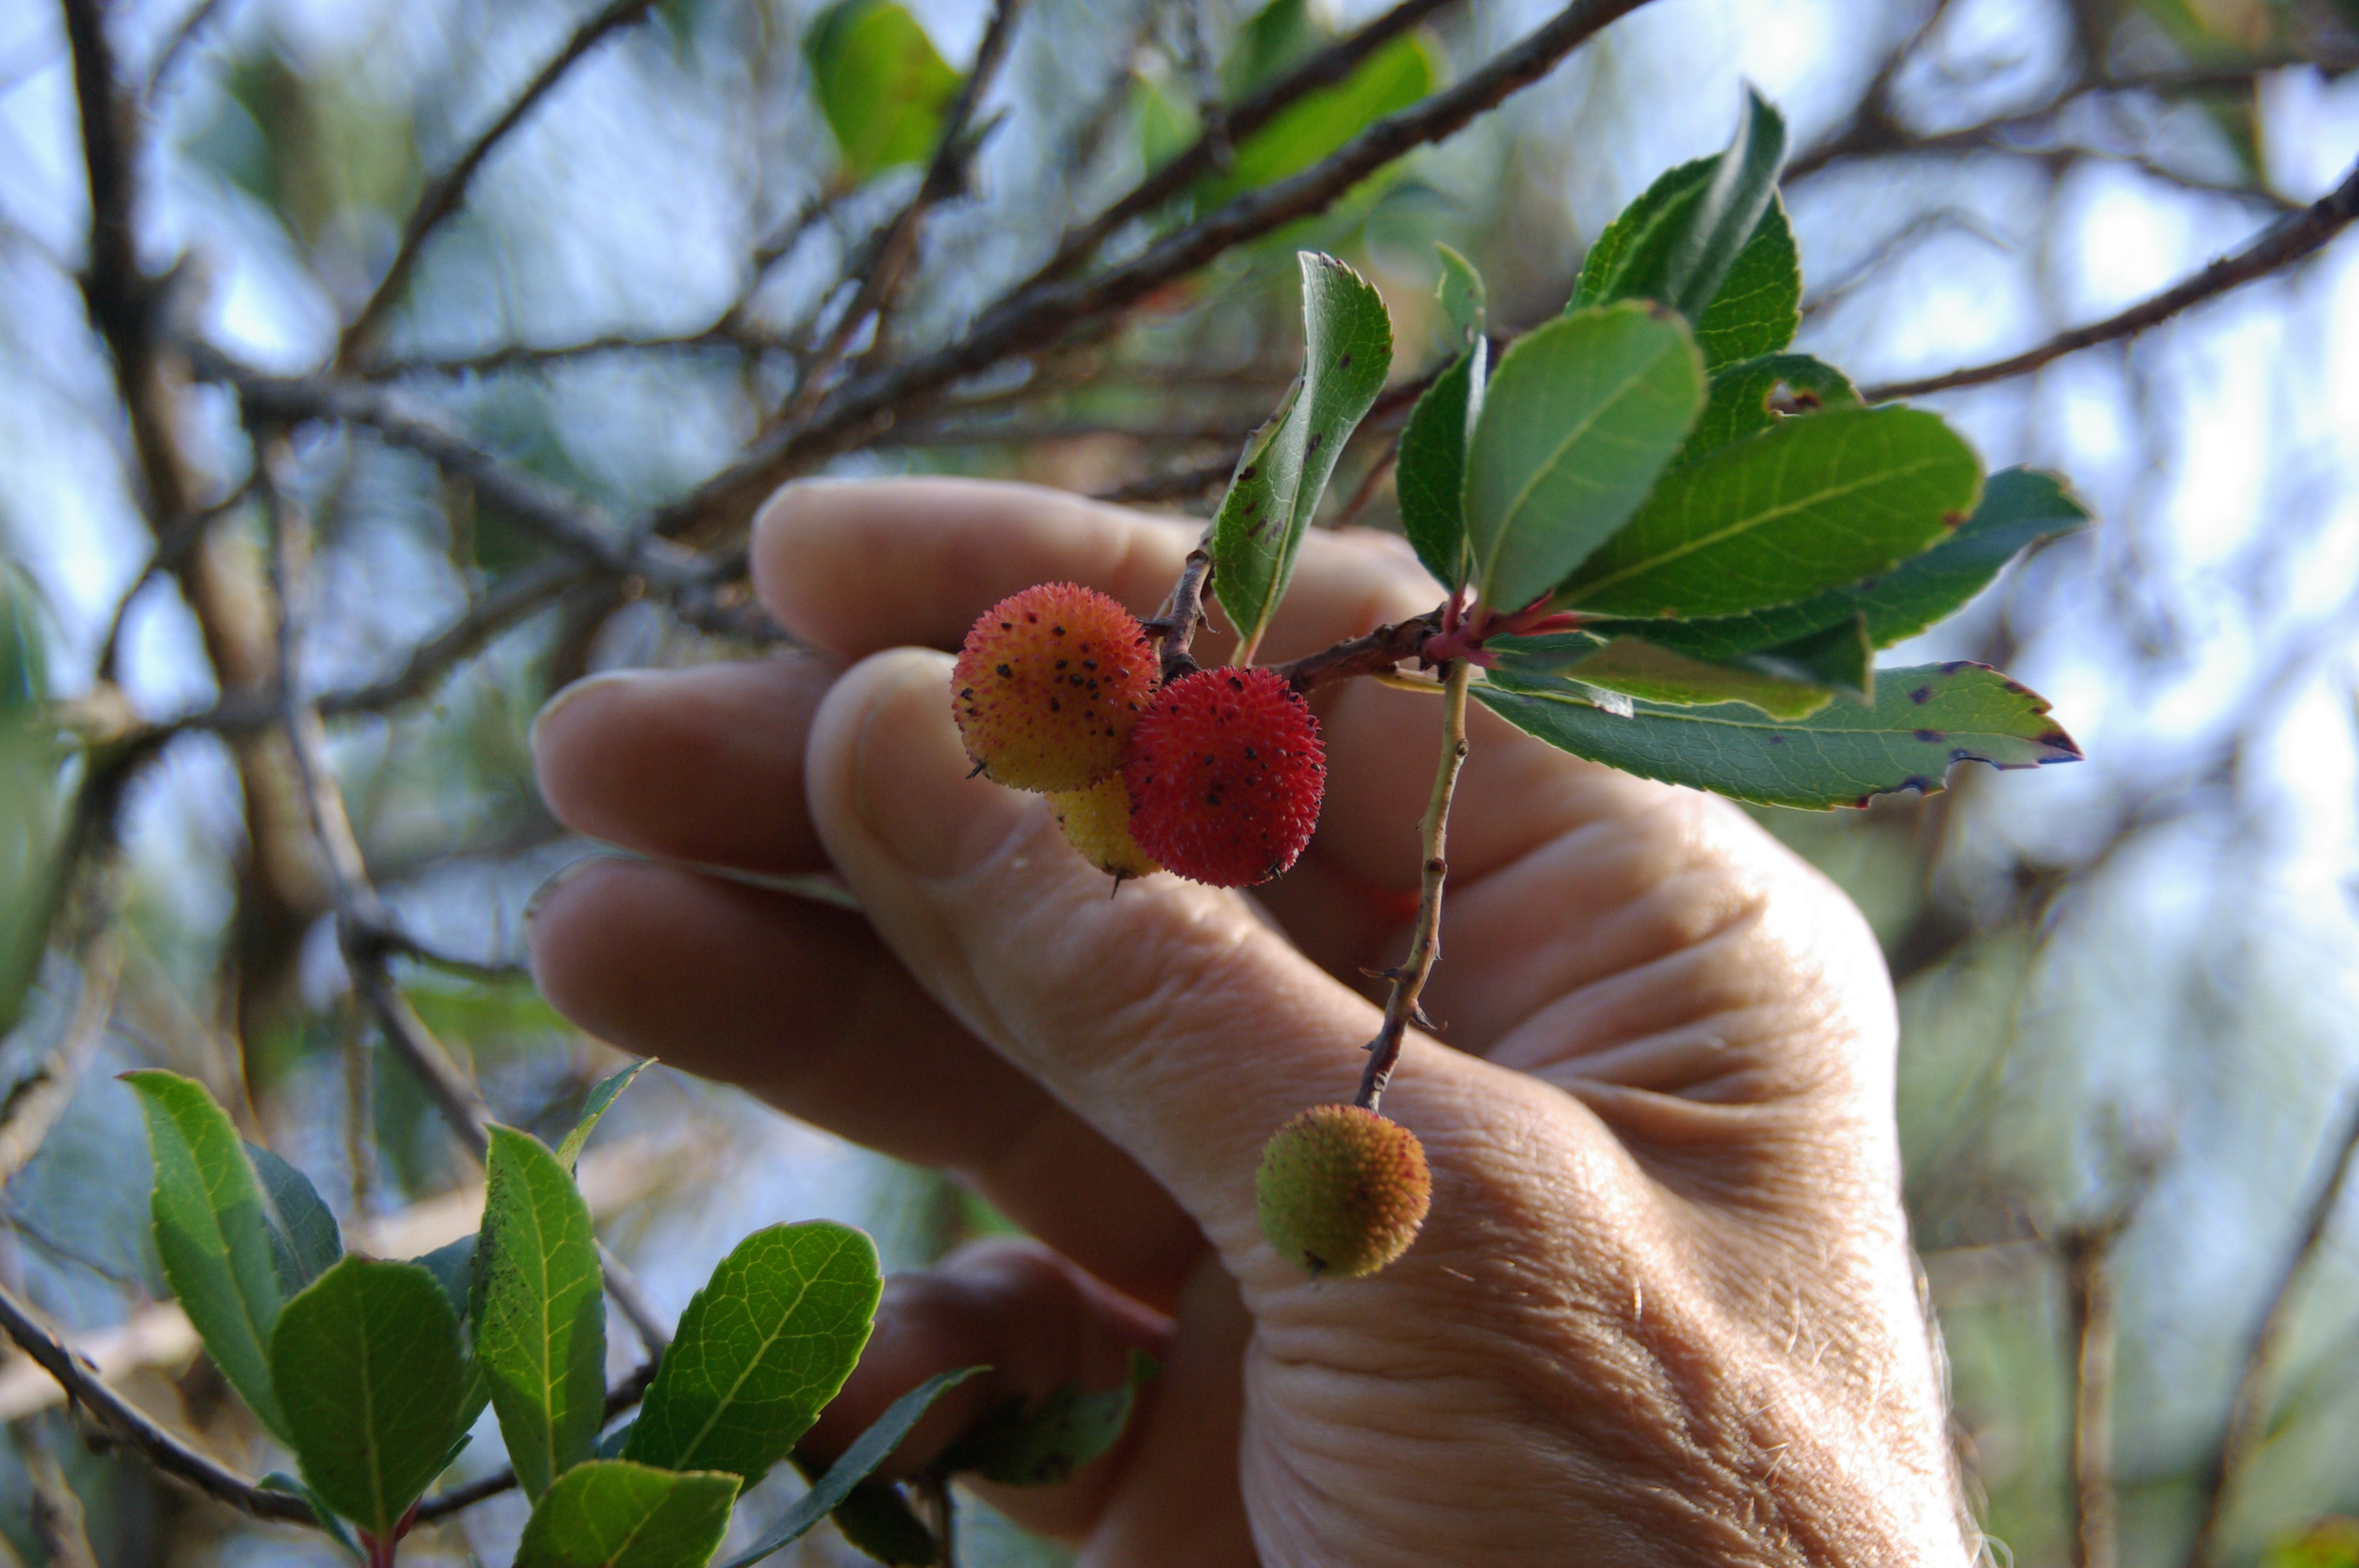 weird and beautiful fruit from the strawberry tree